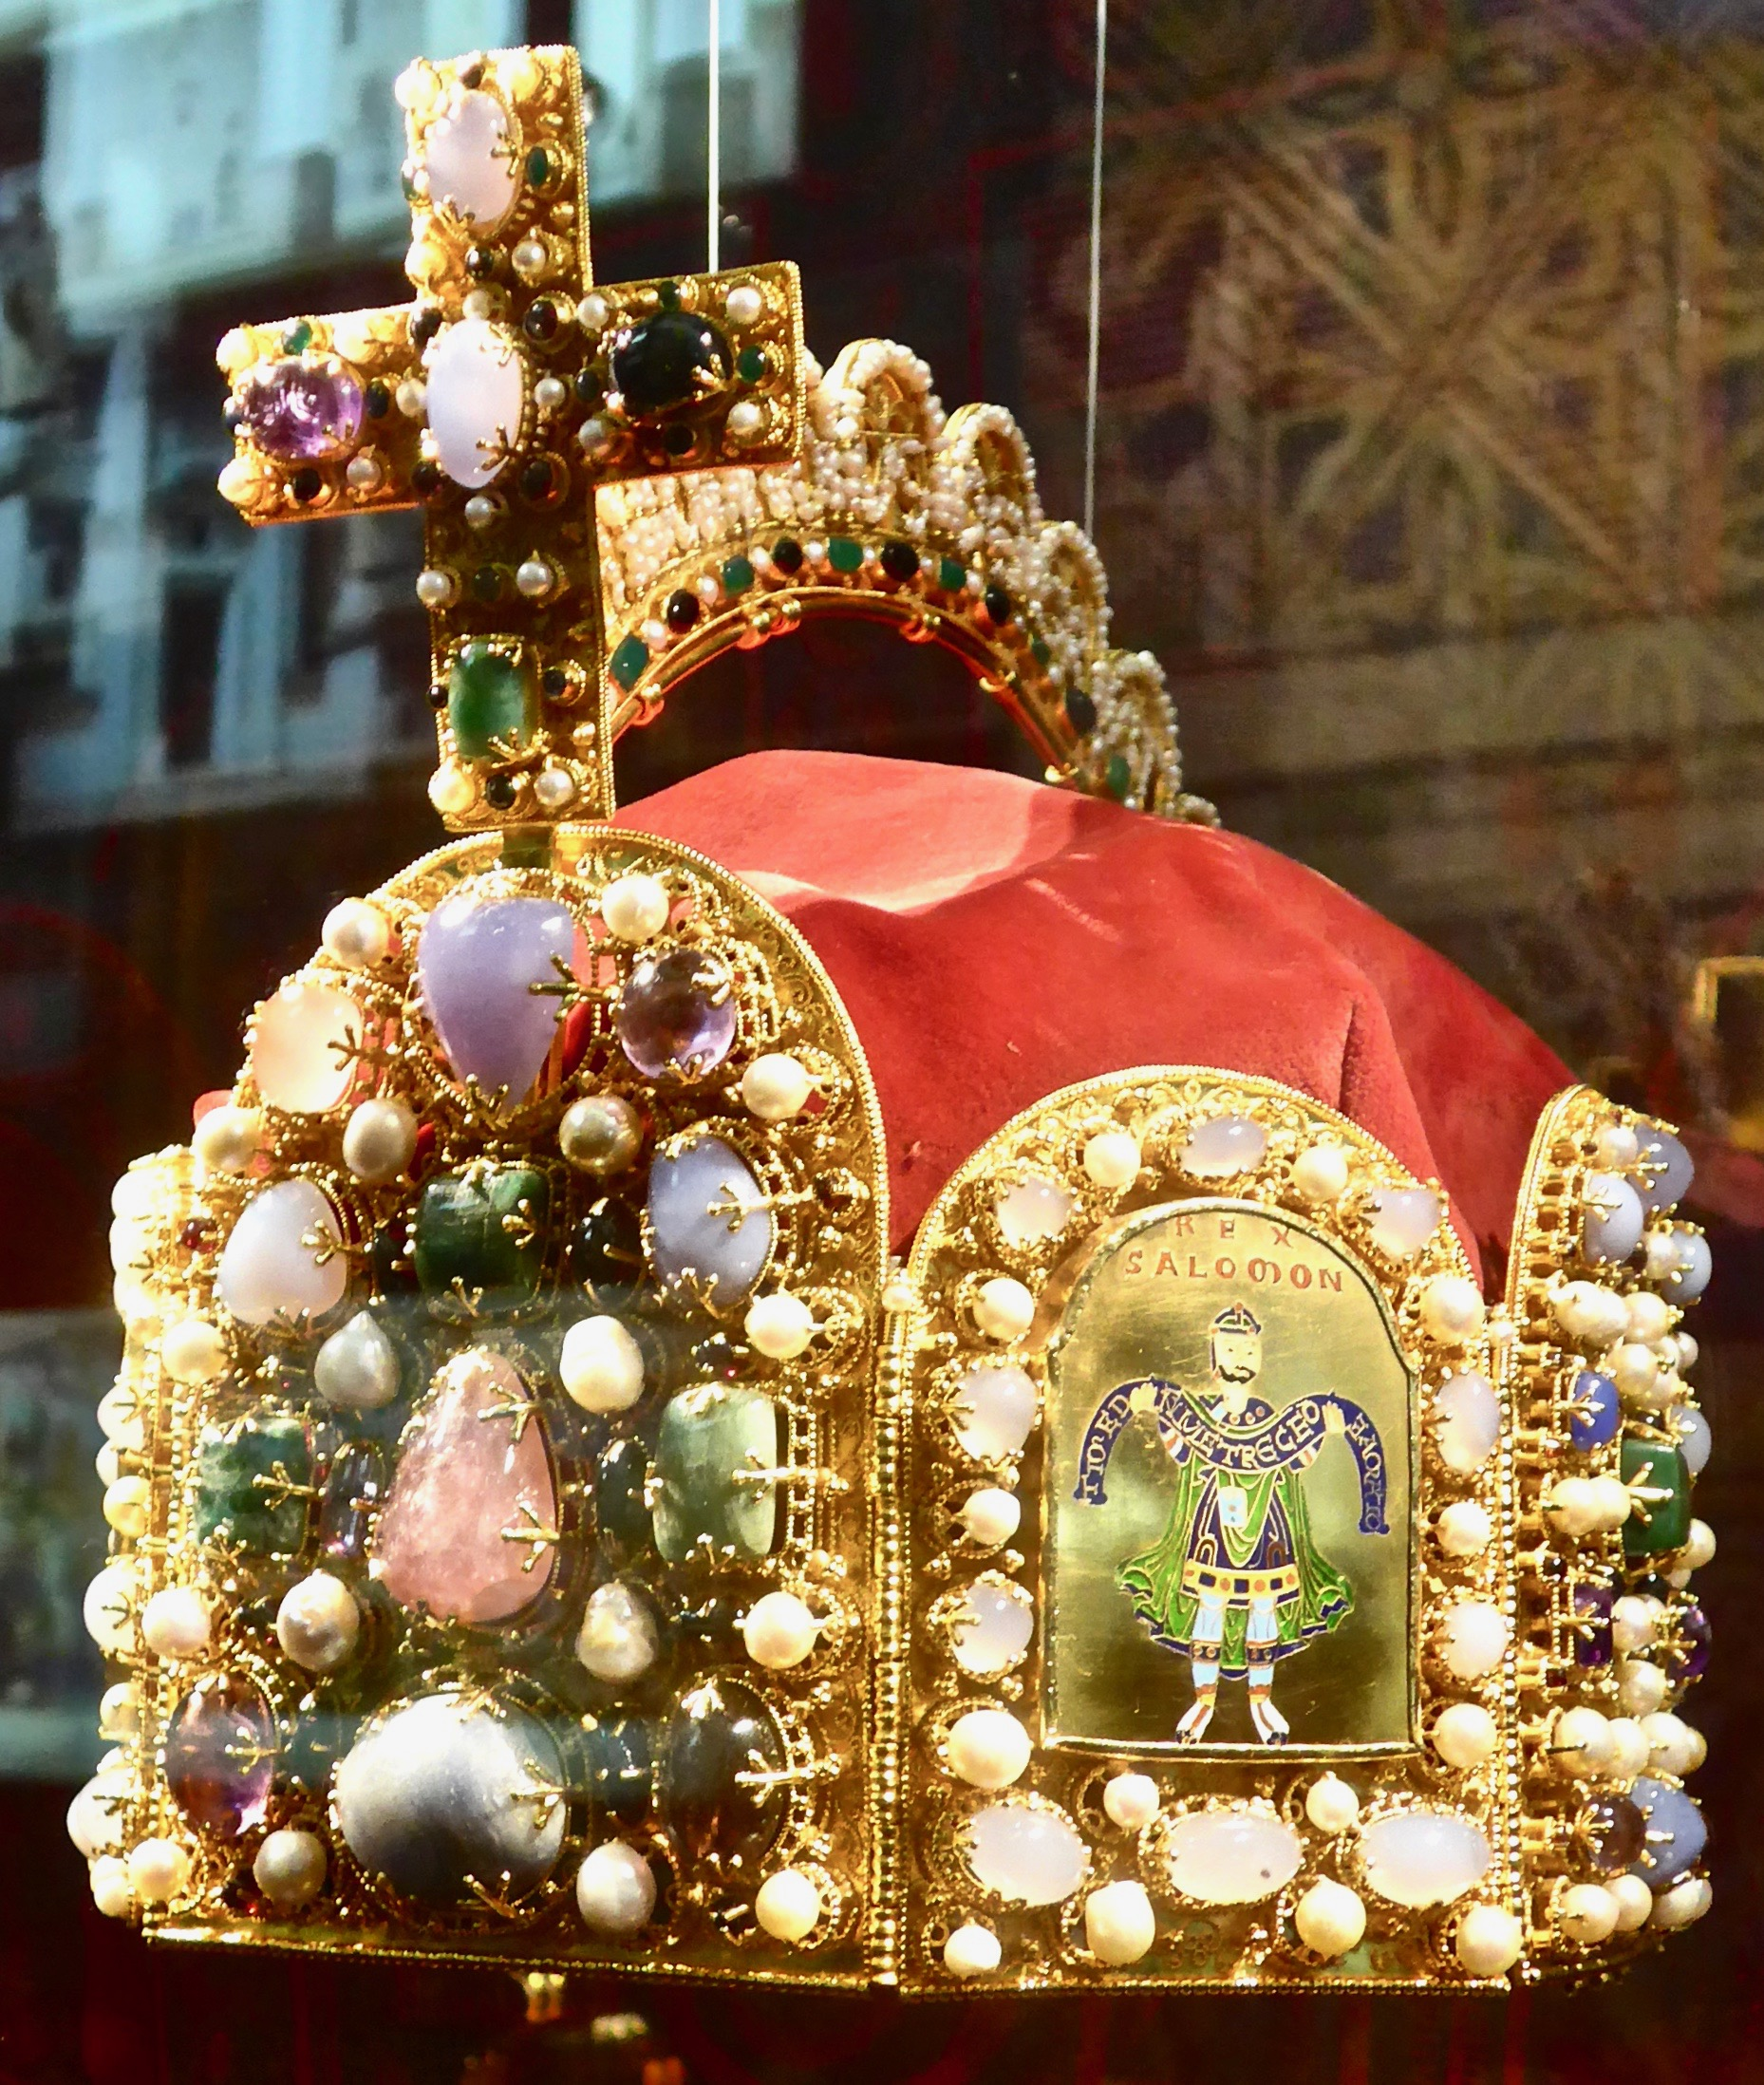 A replica of Karl's crown as the Holy Roman Emperor, showcased in Nuremberg.